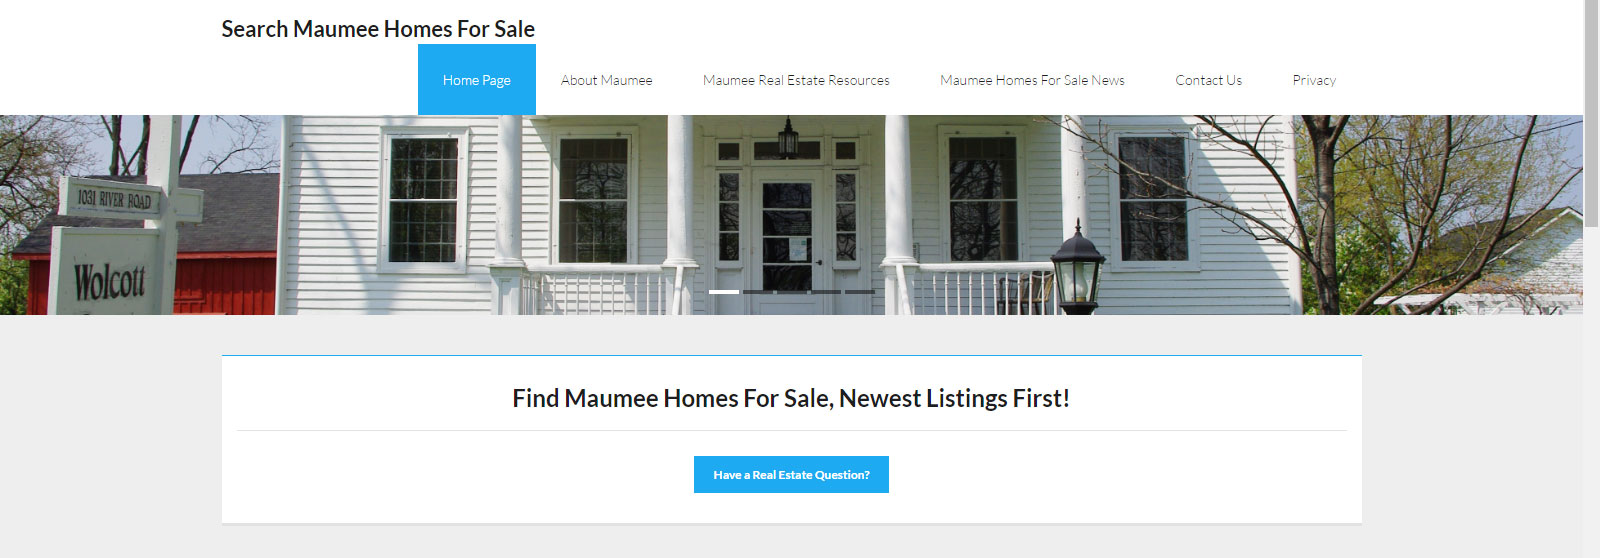 New Real Estate Website Launched: Search Homes For Sale In Maumee, OH